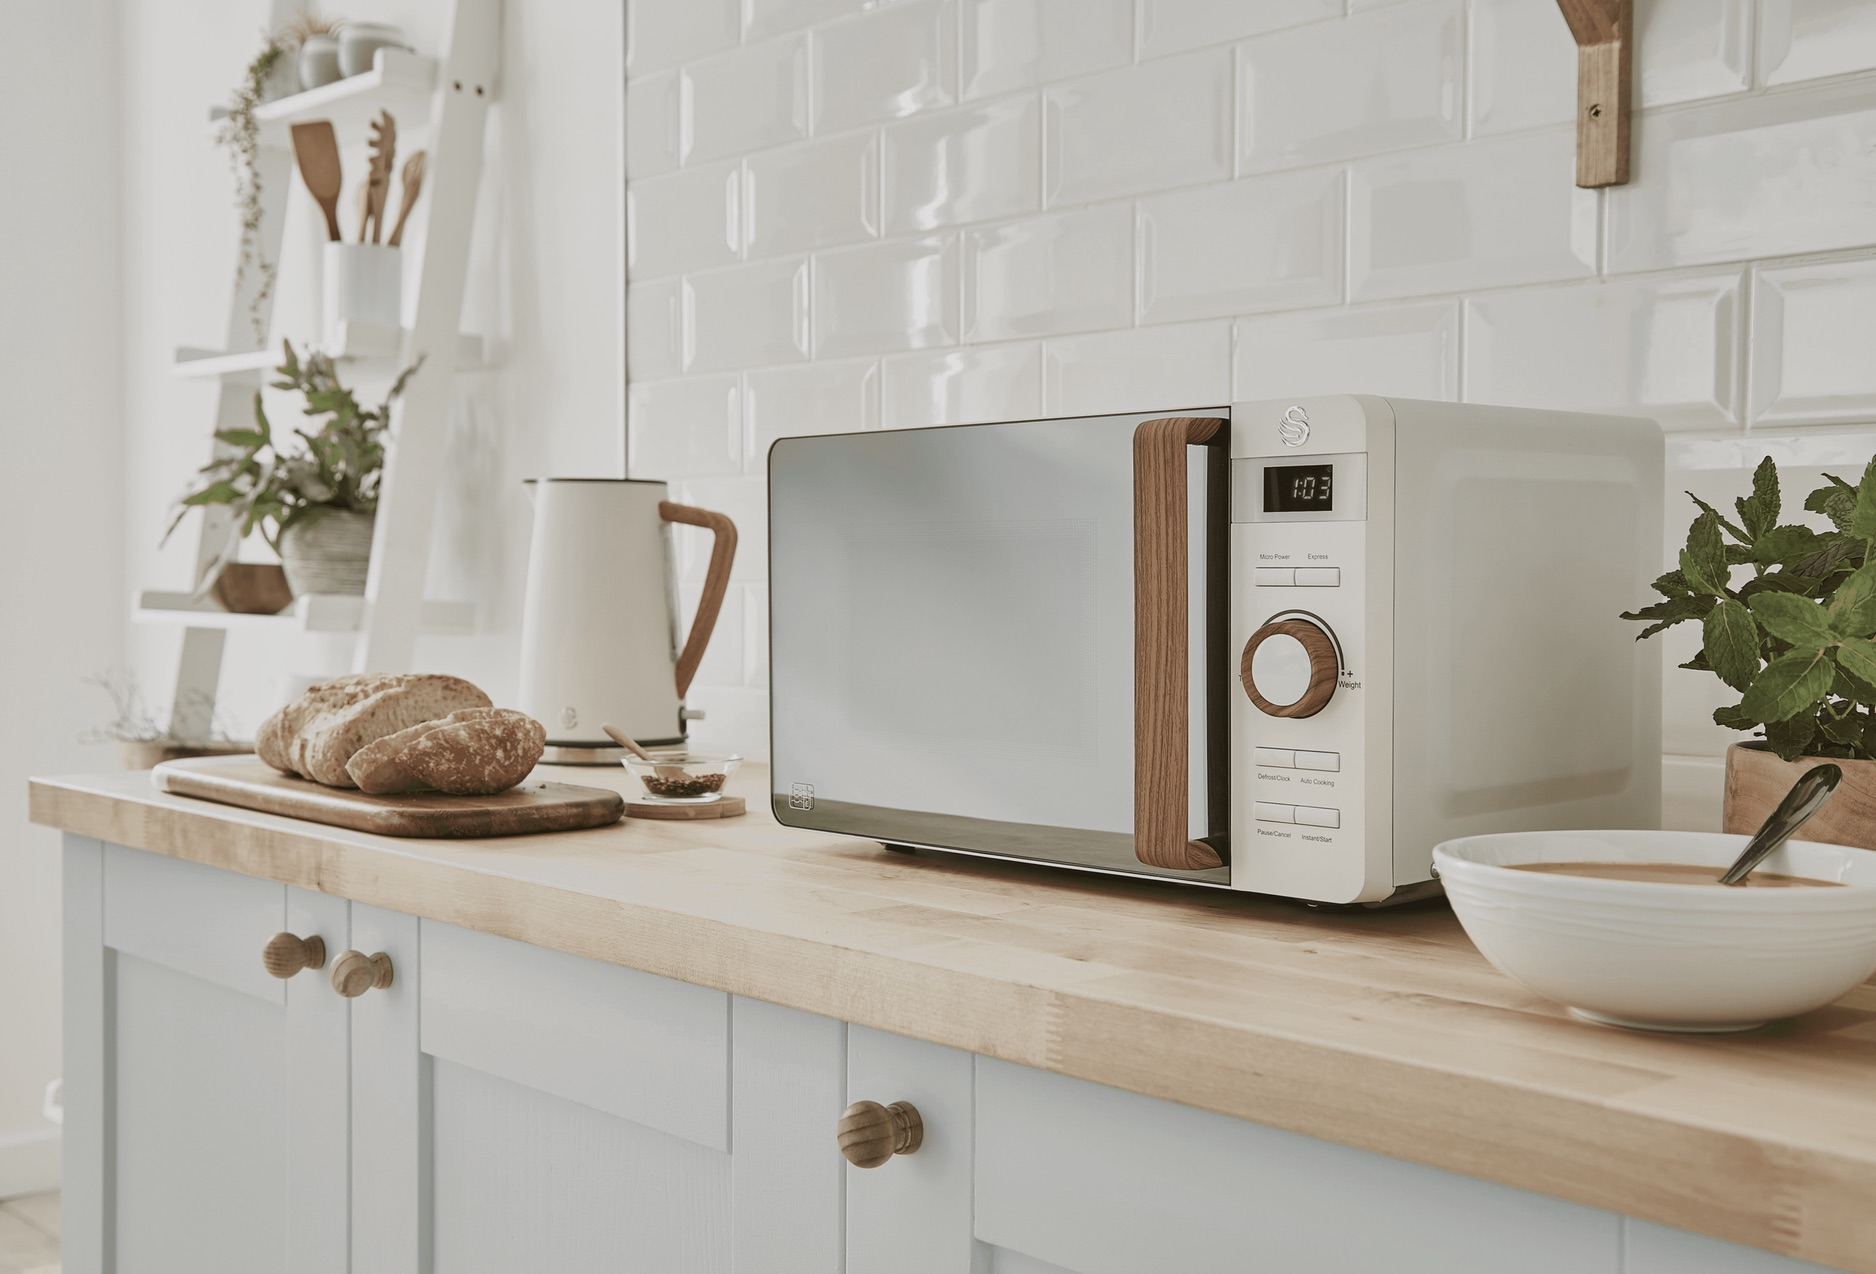 Best Microwave 2020 Our 11 Top Picks